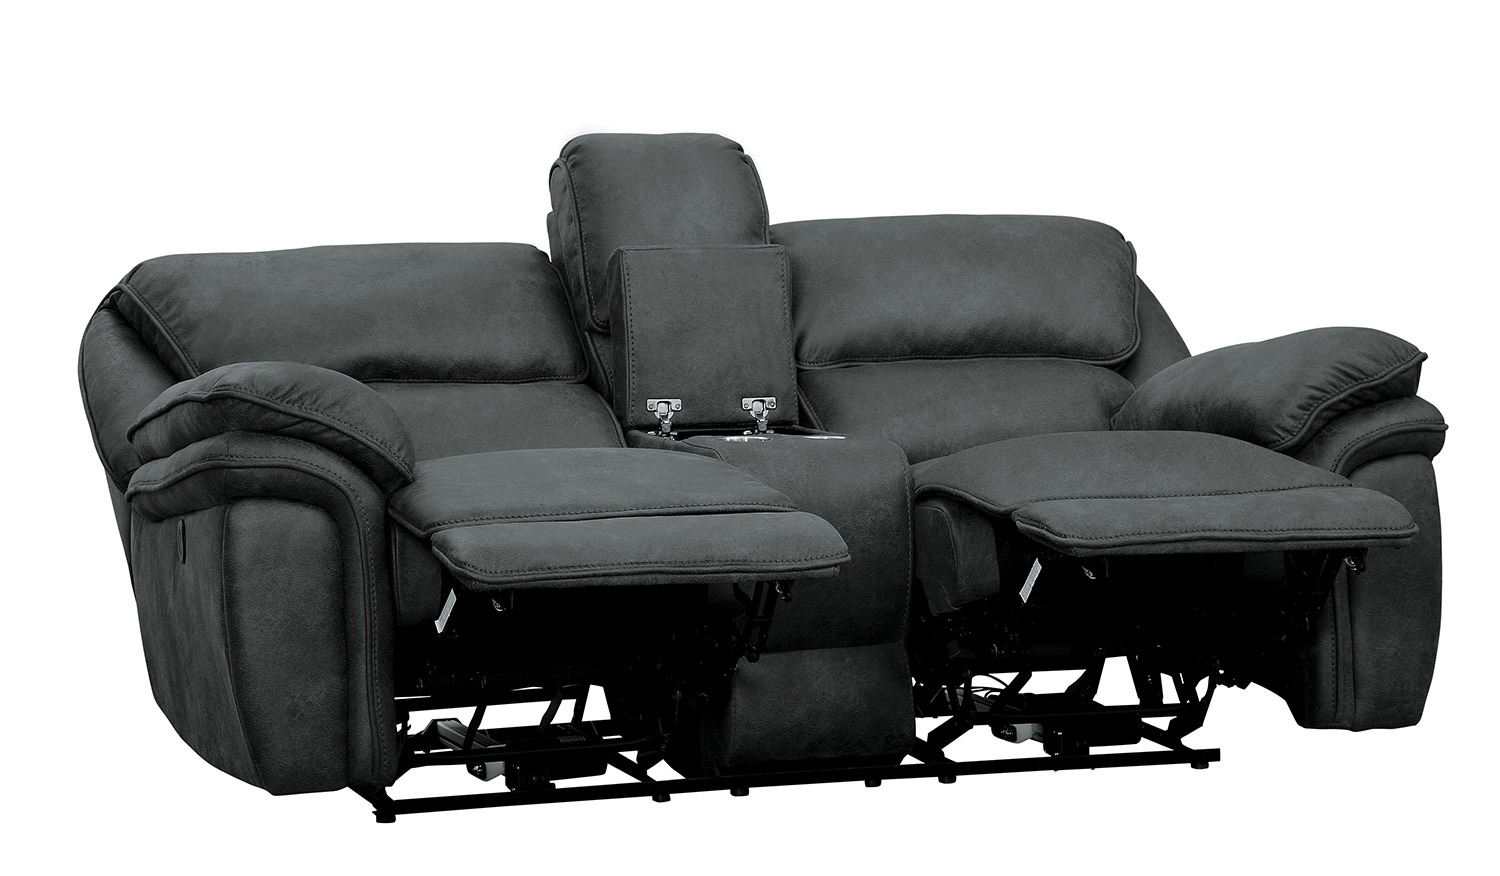 Homelegance Hadden Double Reclining Love Seat With Center Console - Gray